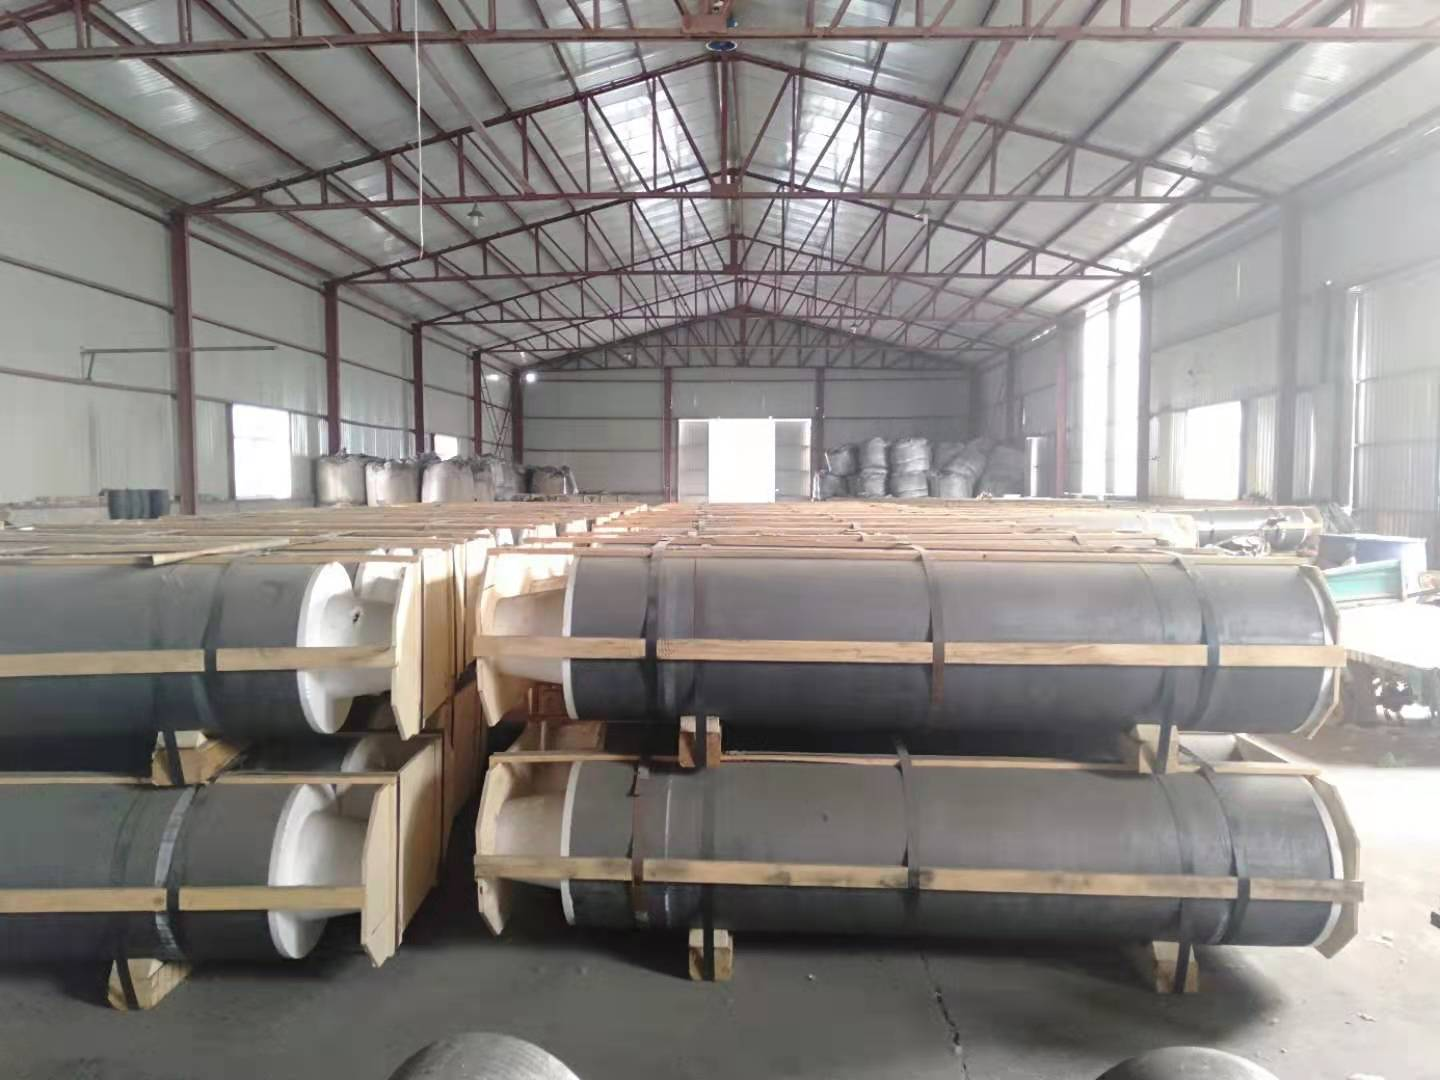 2017-New Built another big Warehouse for graphite electrode and CPC